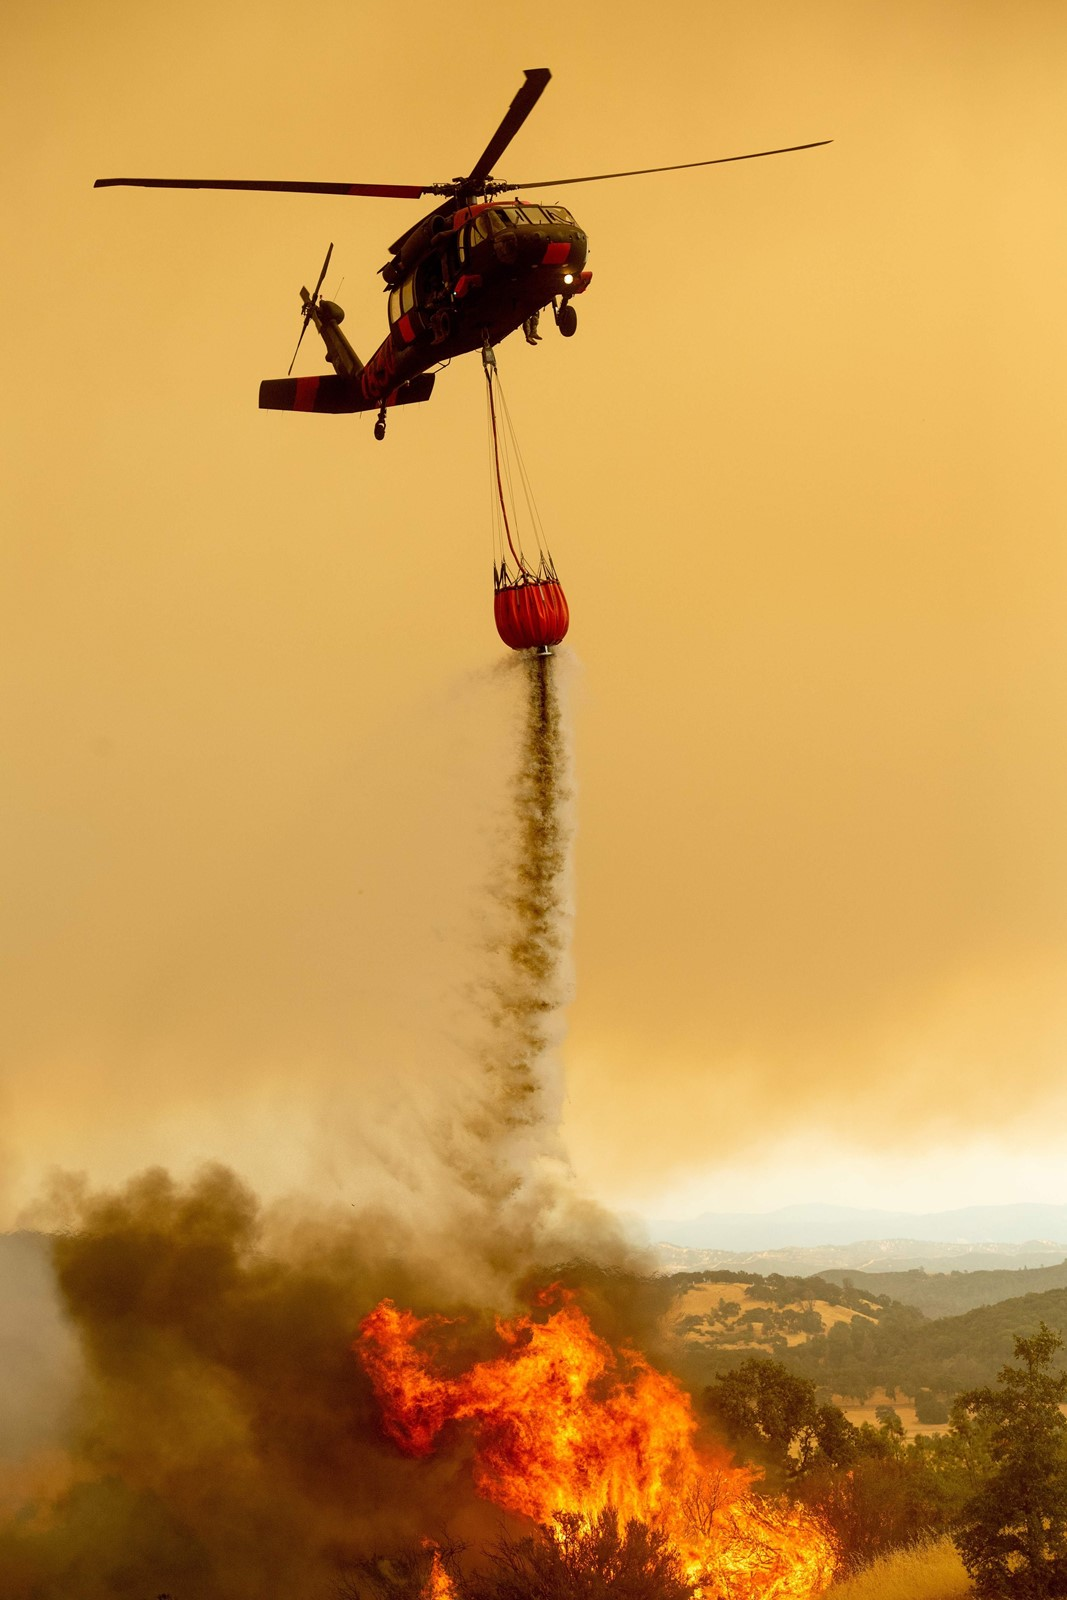 A helicopter drops water on the Ranch fire, which is part of the Mendocino Complex fire, near Clearlake Oaks, California, on Sunday. The erratic blaze has burned more than 266,000 acres and 68 homes in 10 days. — Photograph: Noah Berger/Agence France-Presse/Getty Images.